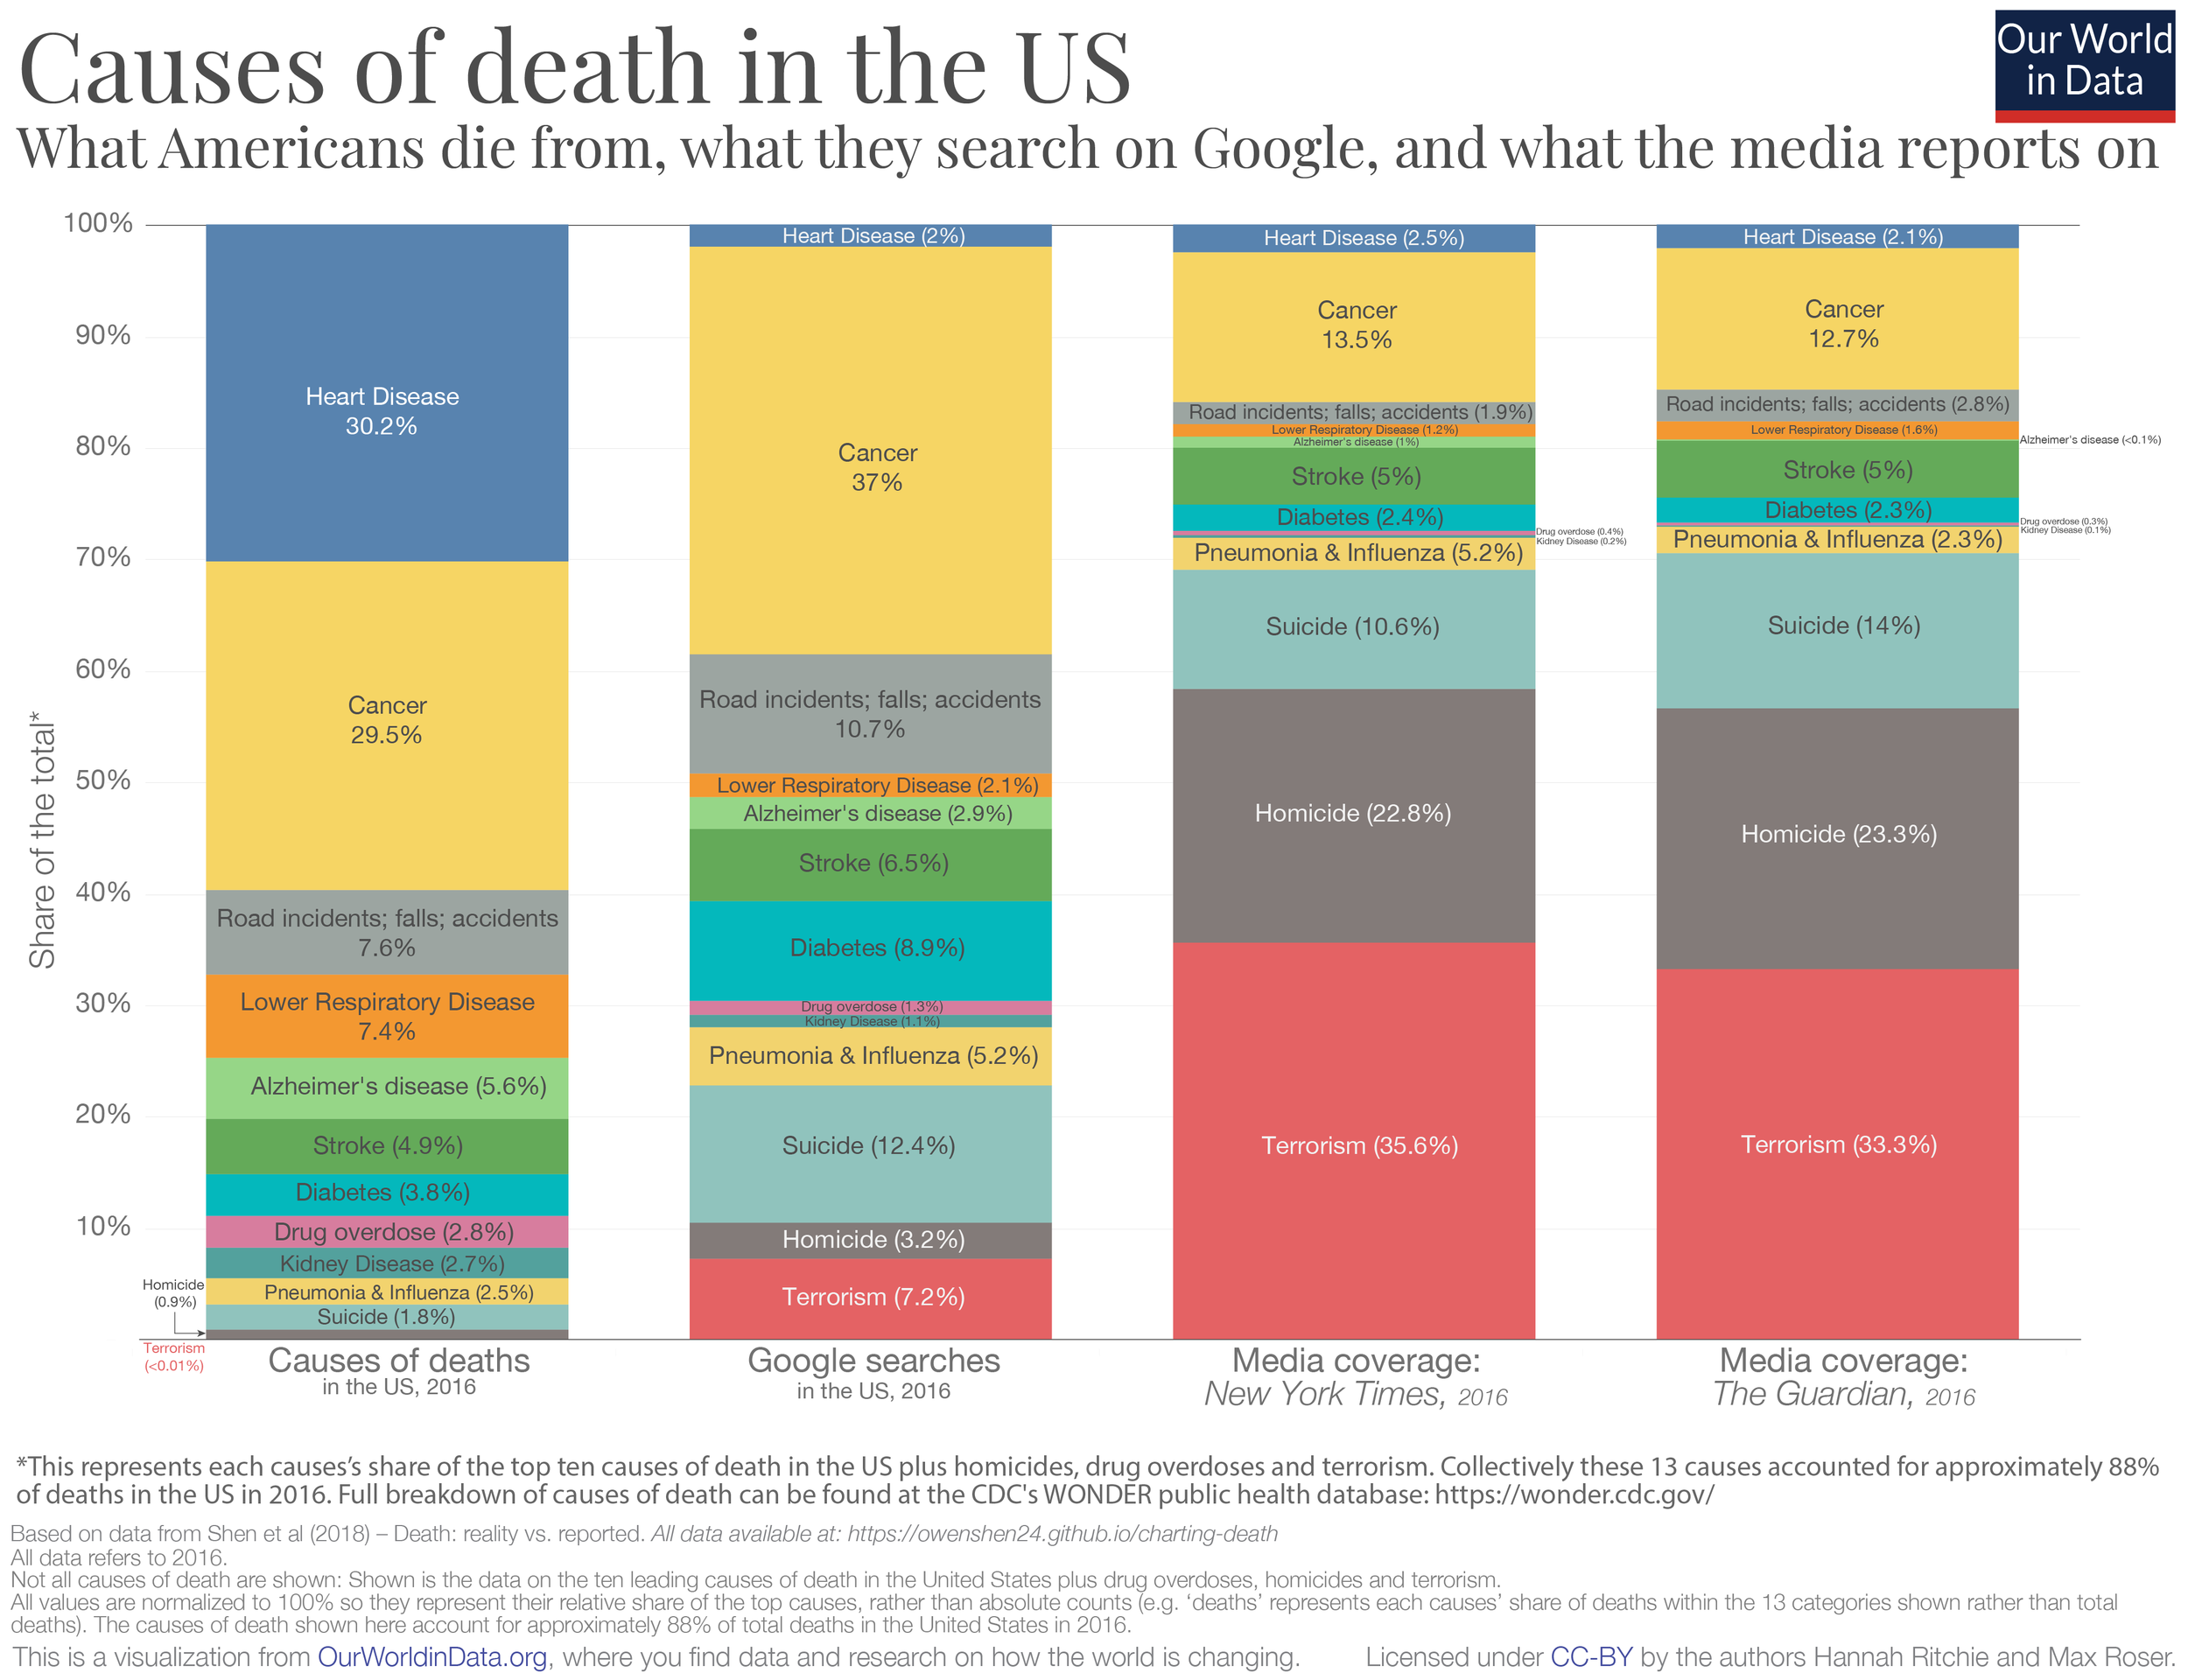 Causes-of-death-in-USA-vs.-media-coverage.png